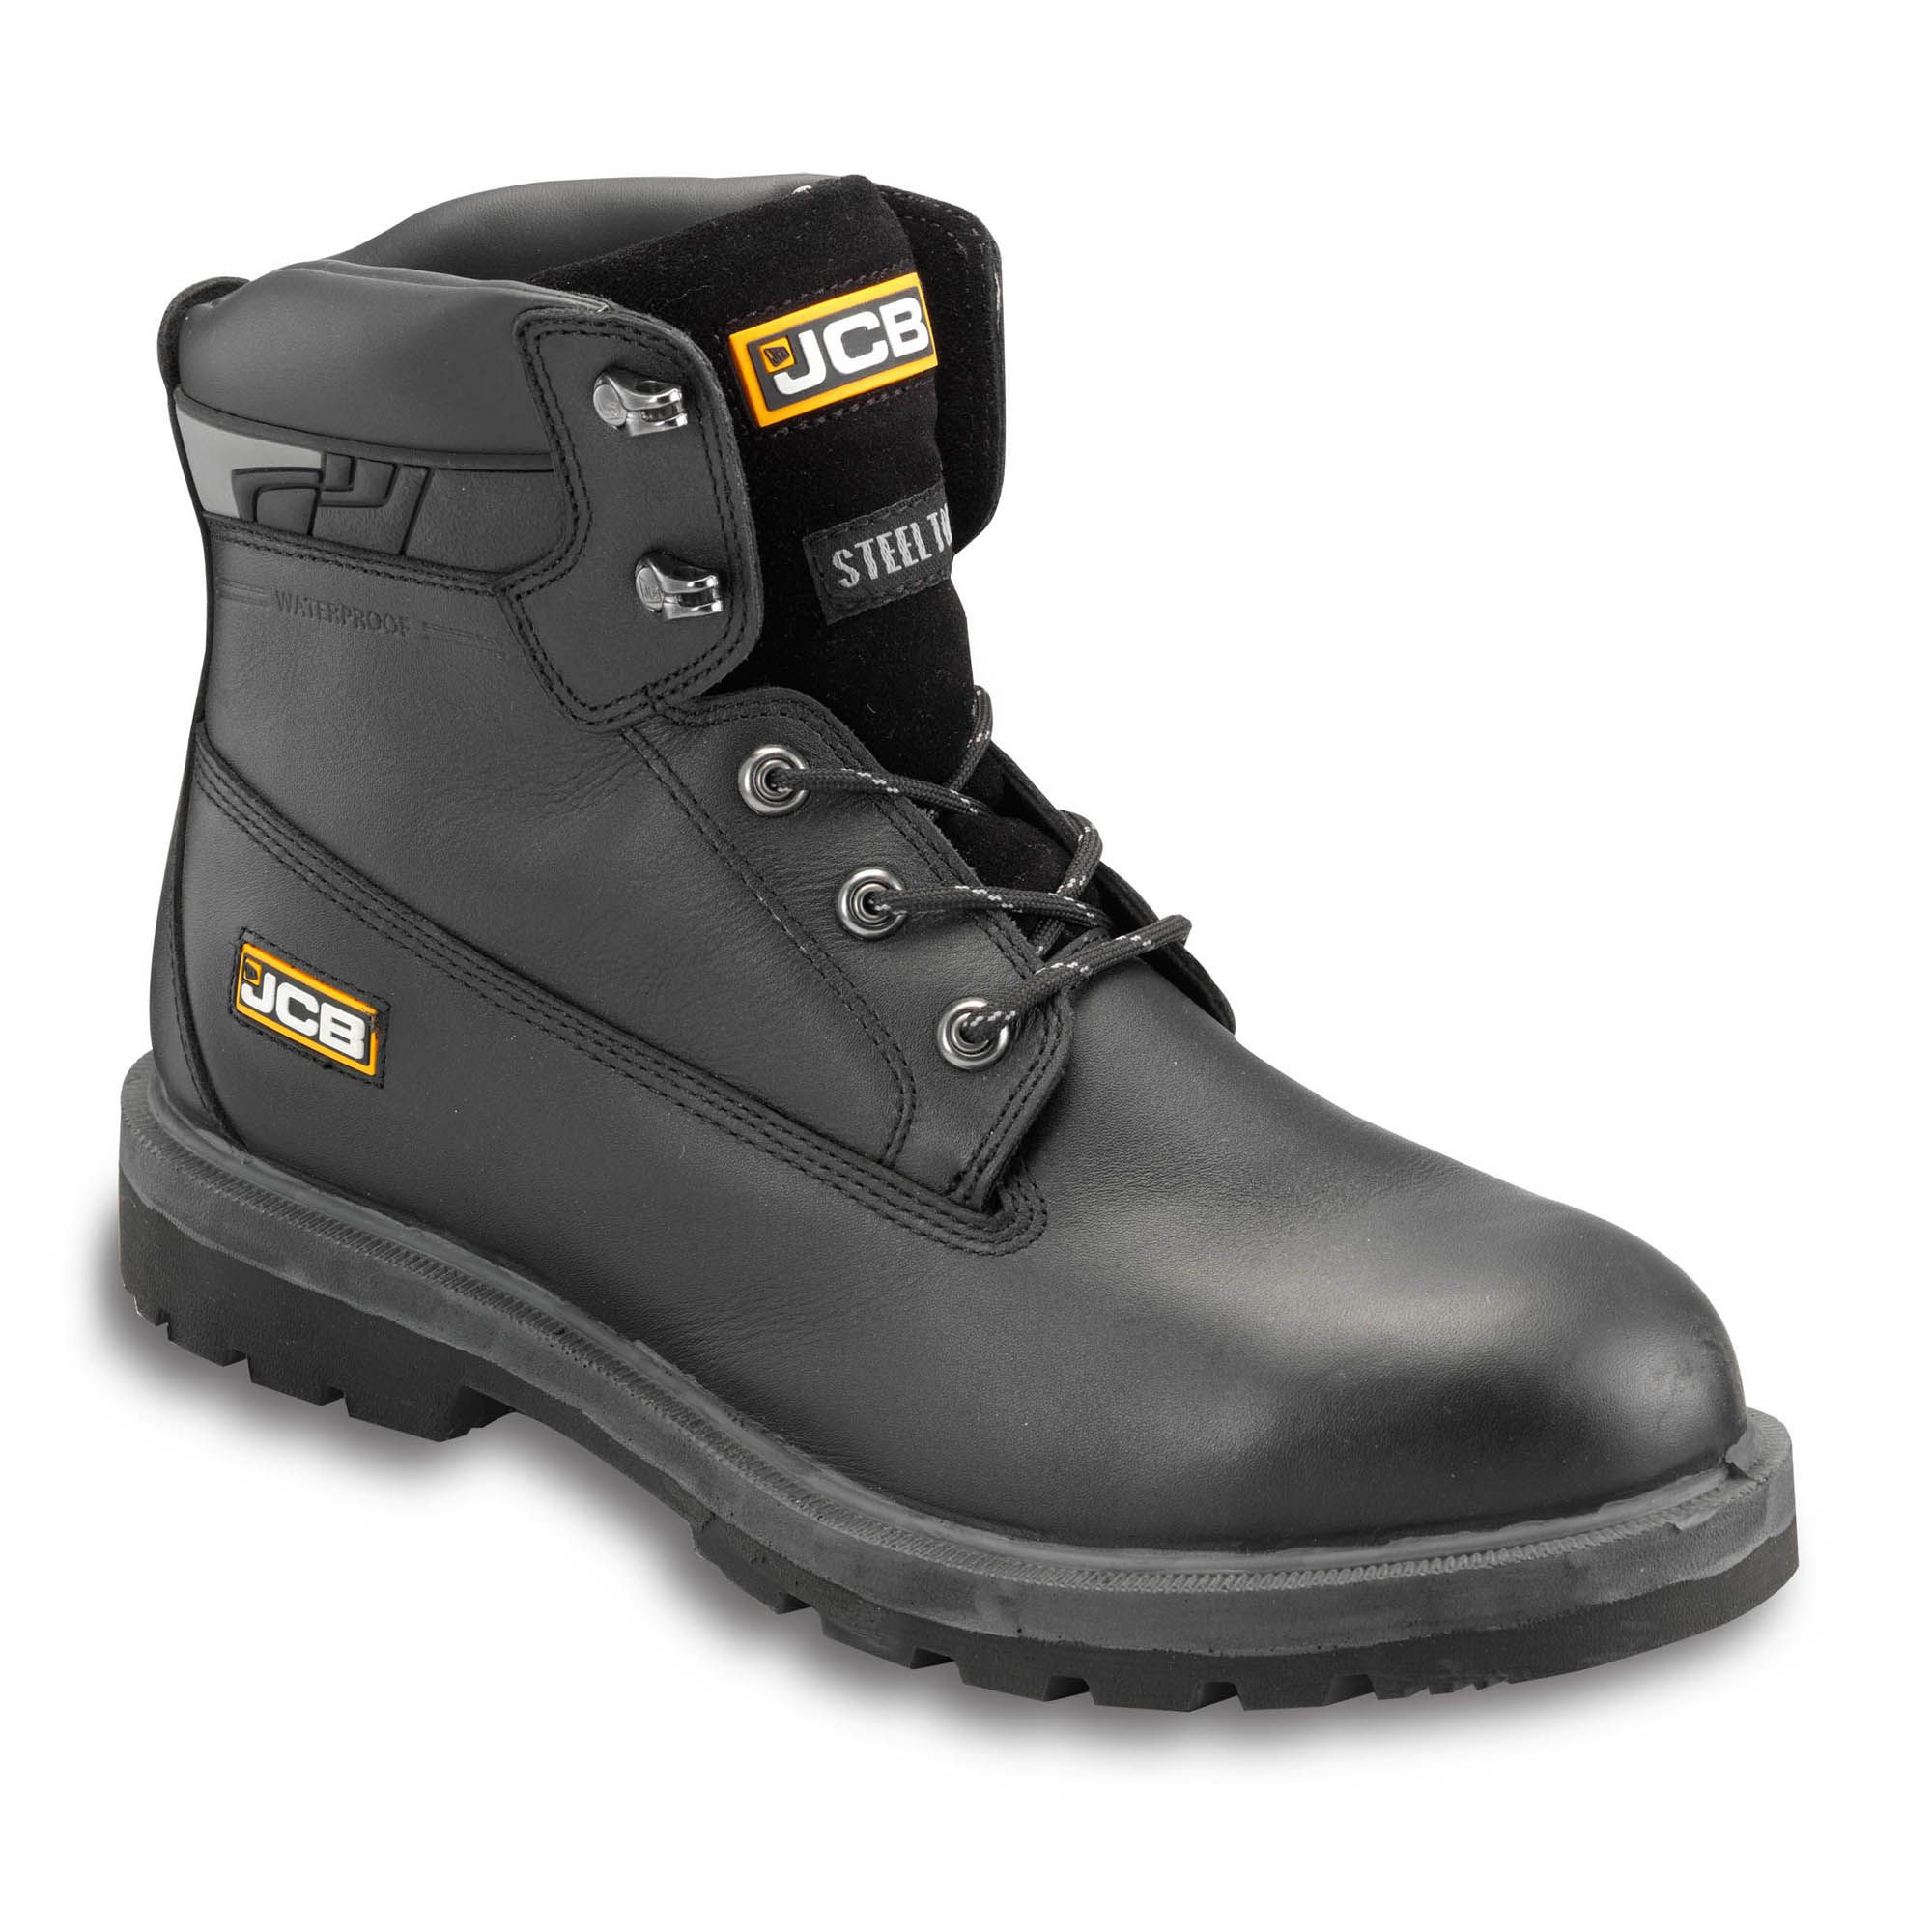 Jcb Black Protector Safety Boots Size 10 Departments